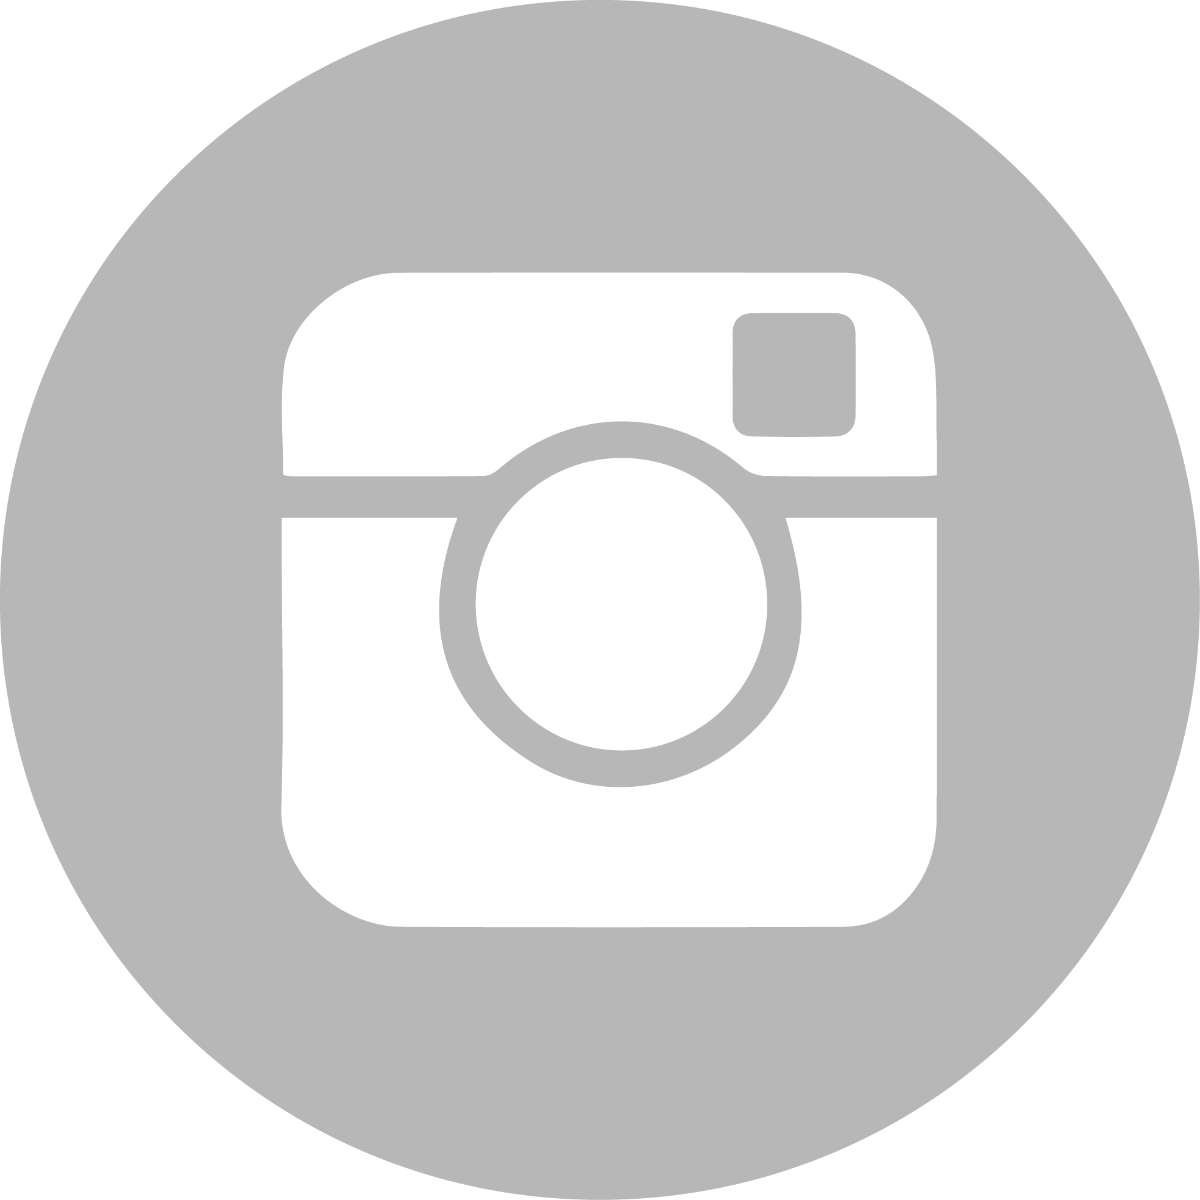 Instagram Interset Icons Media Linkedin Computer Facebook PNG Image